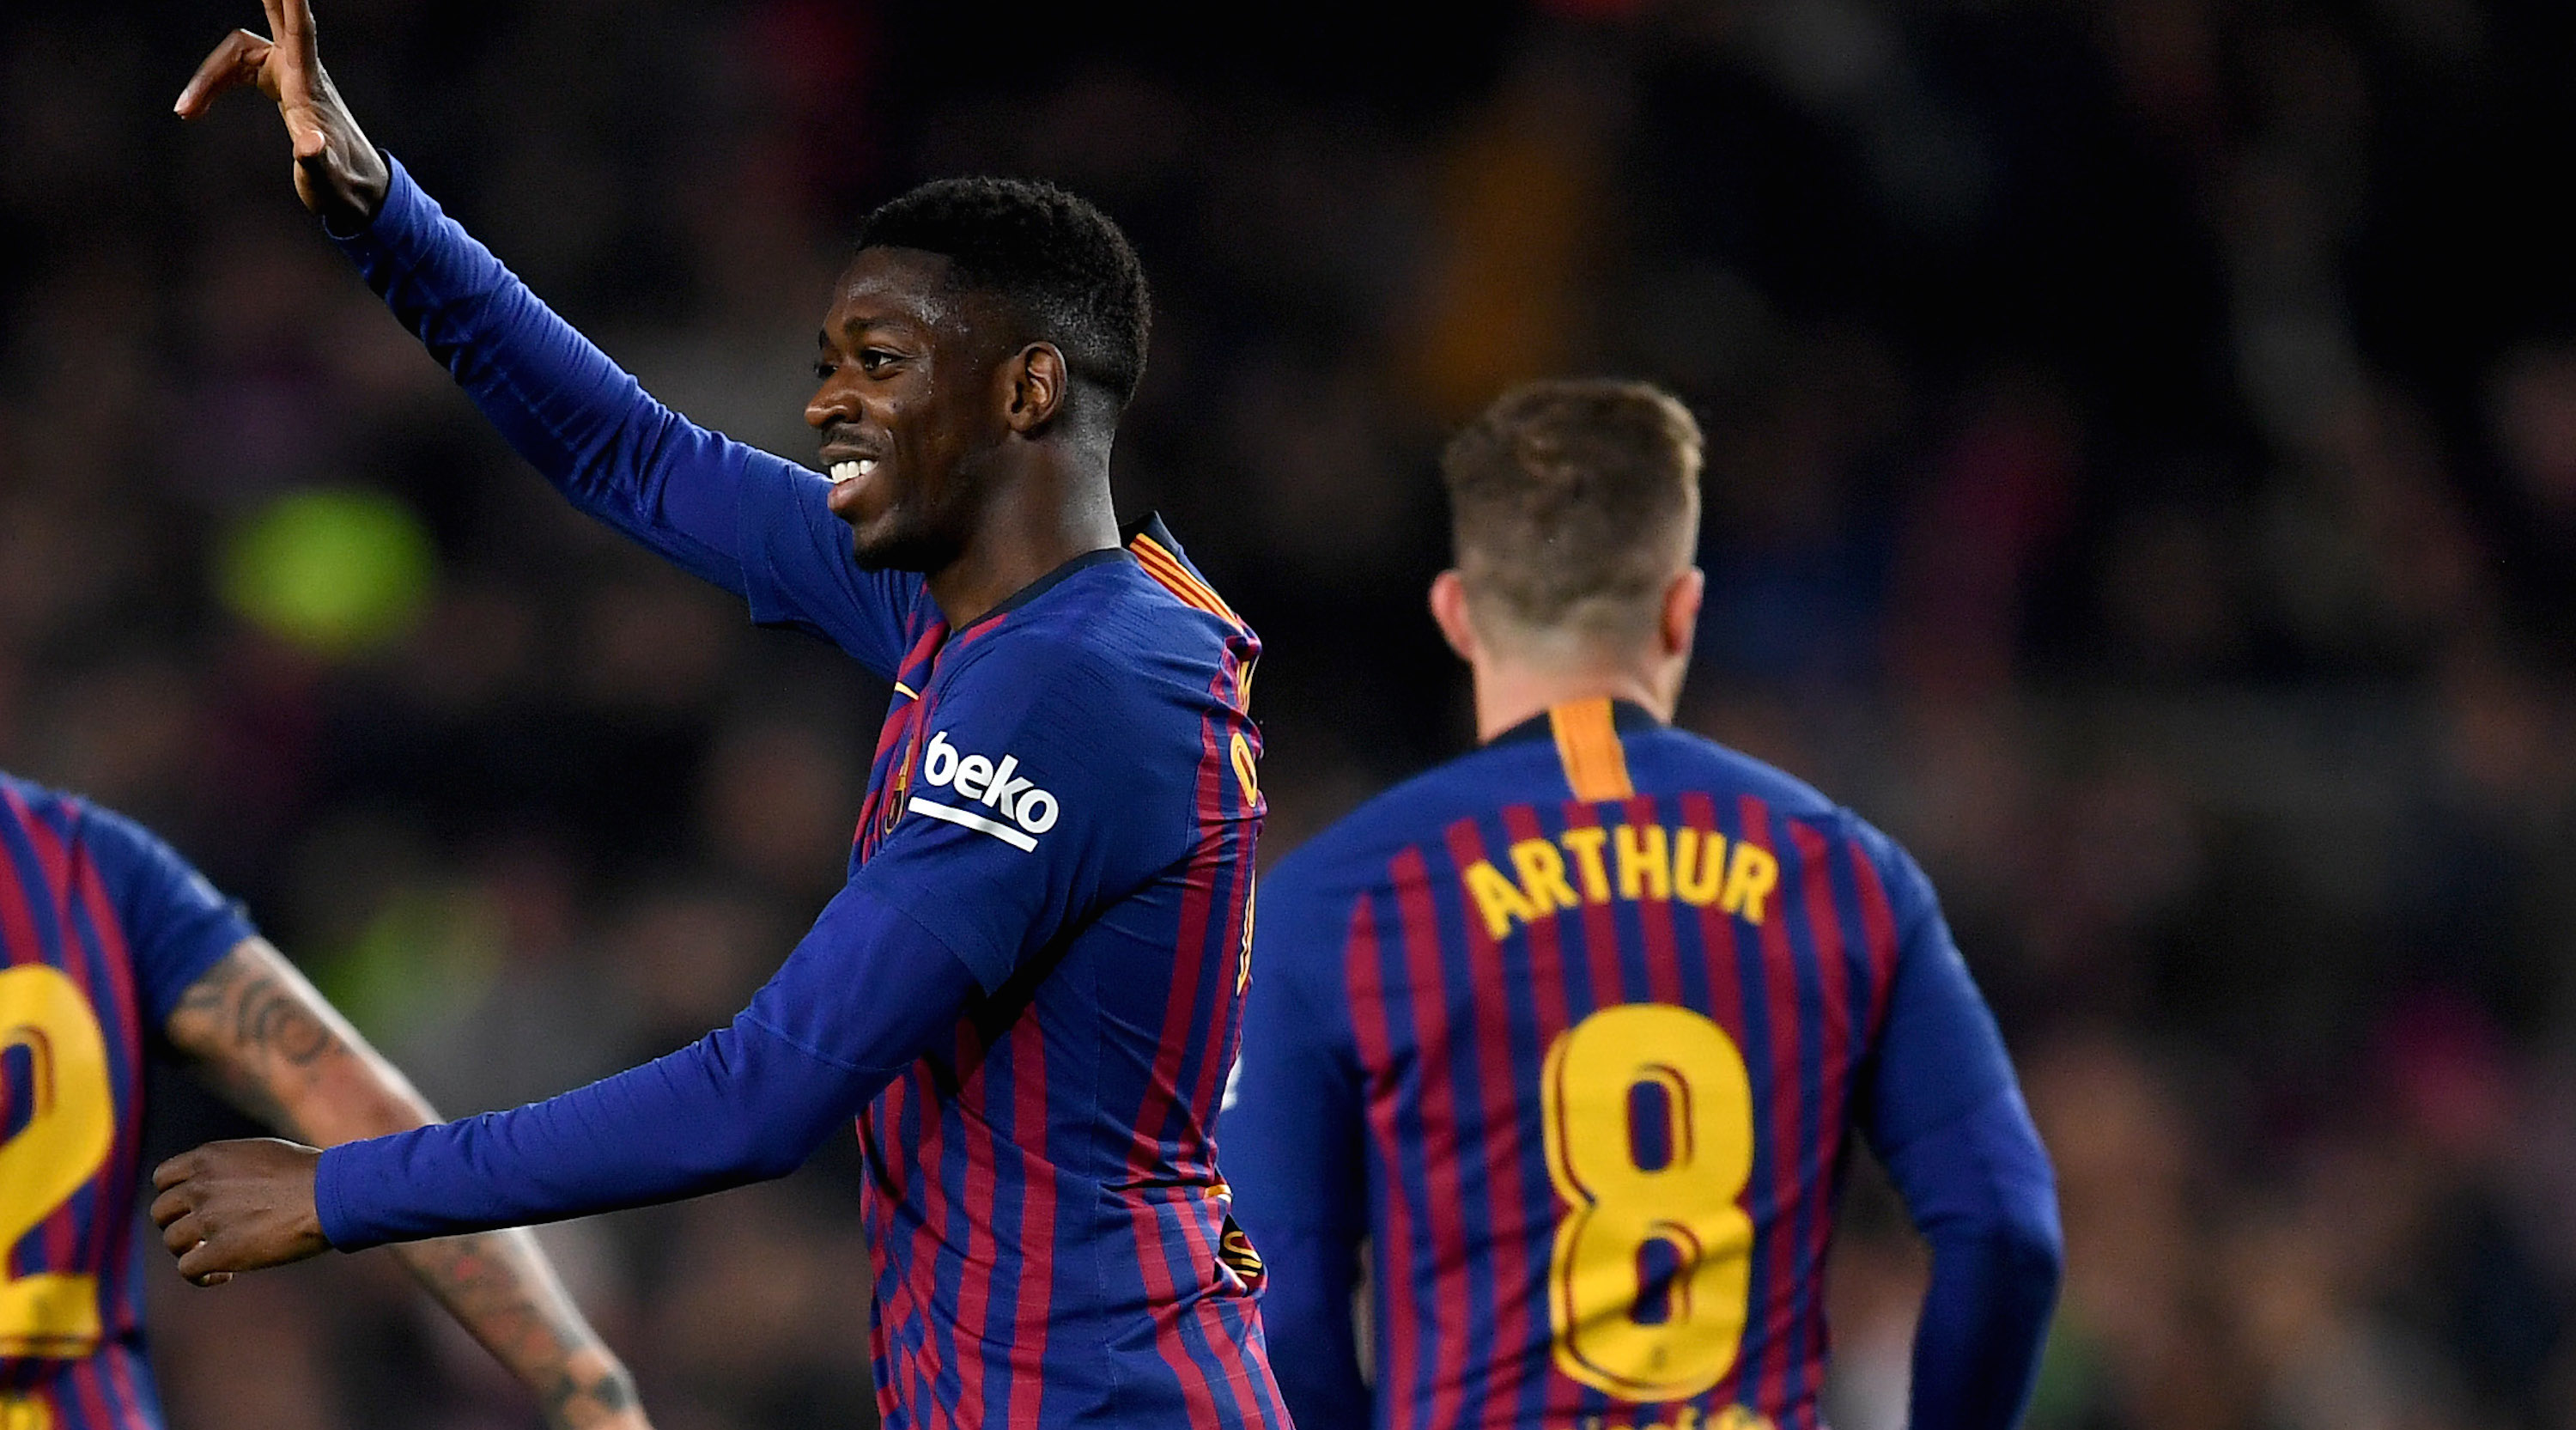 BARCELONA, SPAIN - JANUARY 17: Dembele of FC Barcelona celebrates his goal during the Copa del Rey Round of 16 match between FC Barcelona and Levante at Nou Camp on January 17, 2019 in Barcelona, Spain. (Photo by David Ramos/Getty Images)